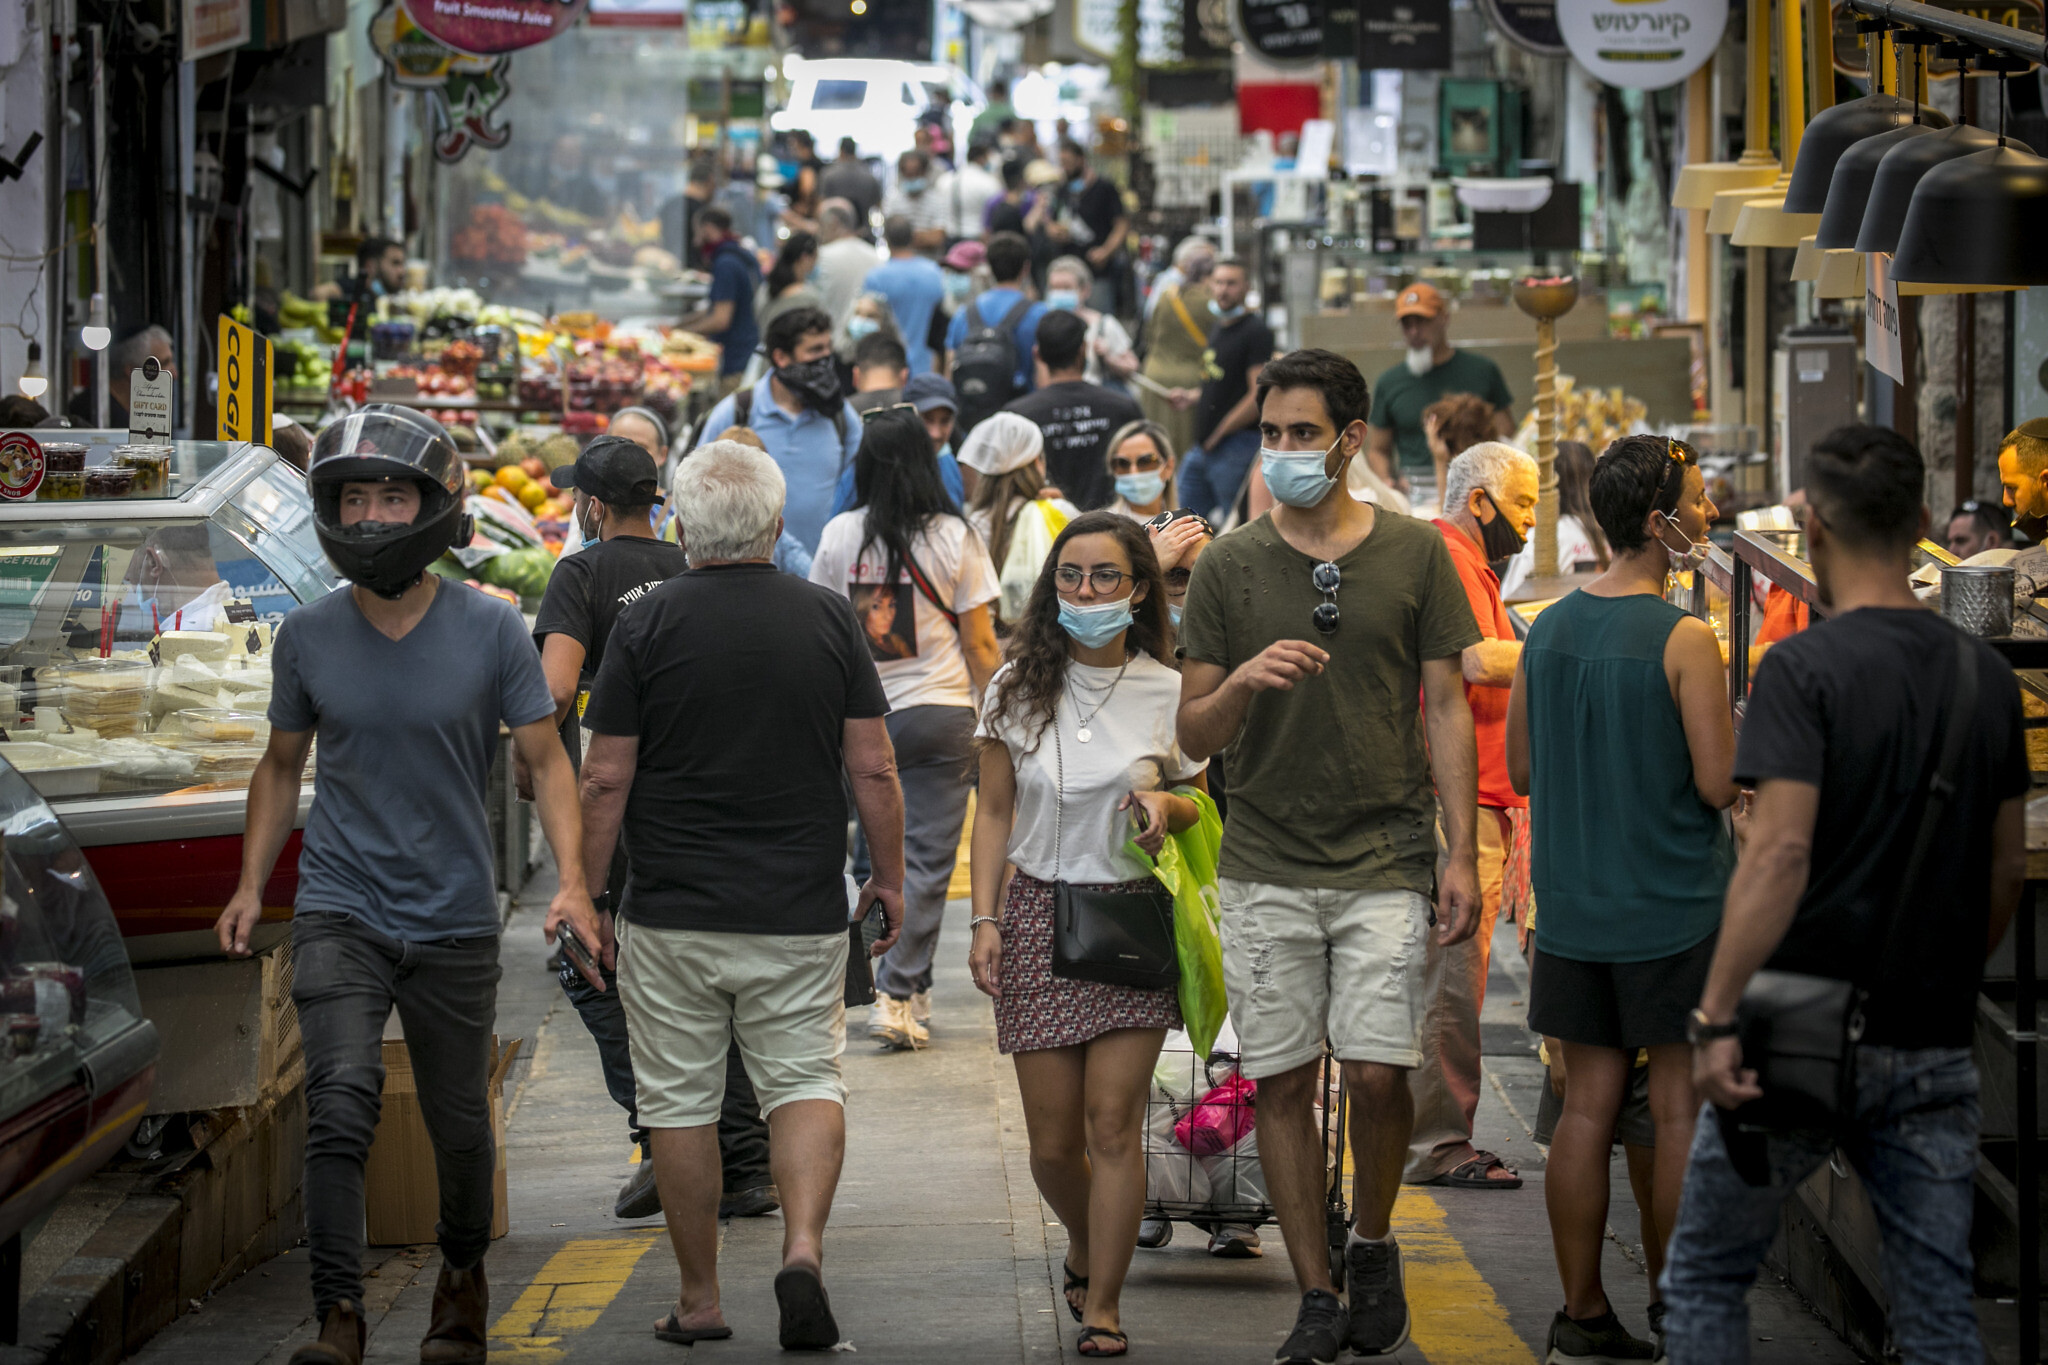 Israelis, wearing facemasks for fear of the coronavirus, shop for groceries at the Mahane Yehuda market in Jerusalem after it reopened according to the new government orders, June 16, 2020. (Olivier Fitoussi/Flash90)